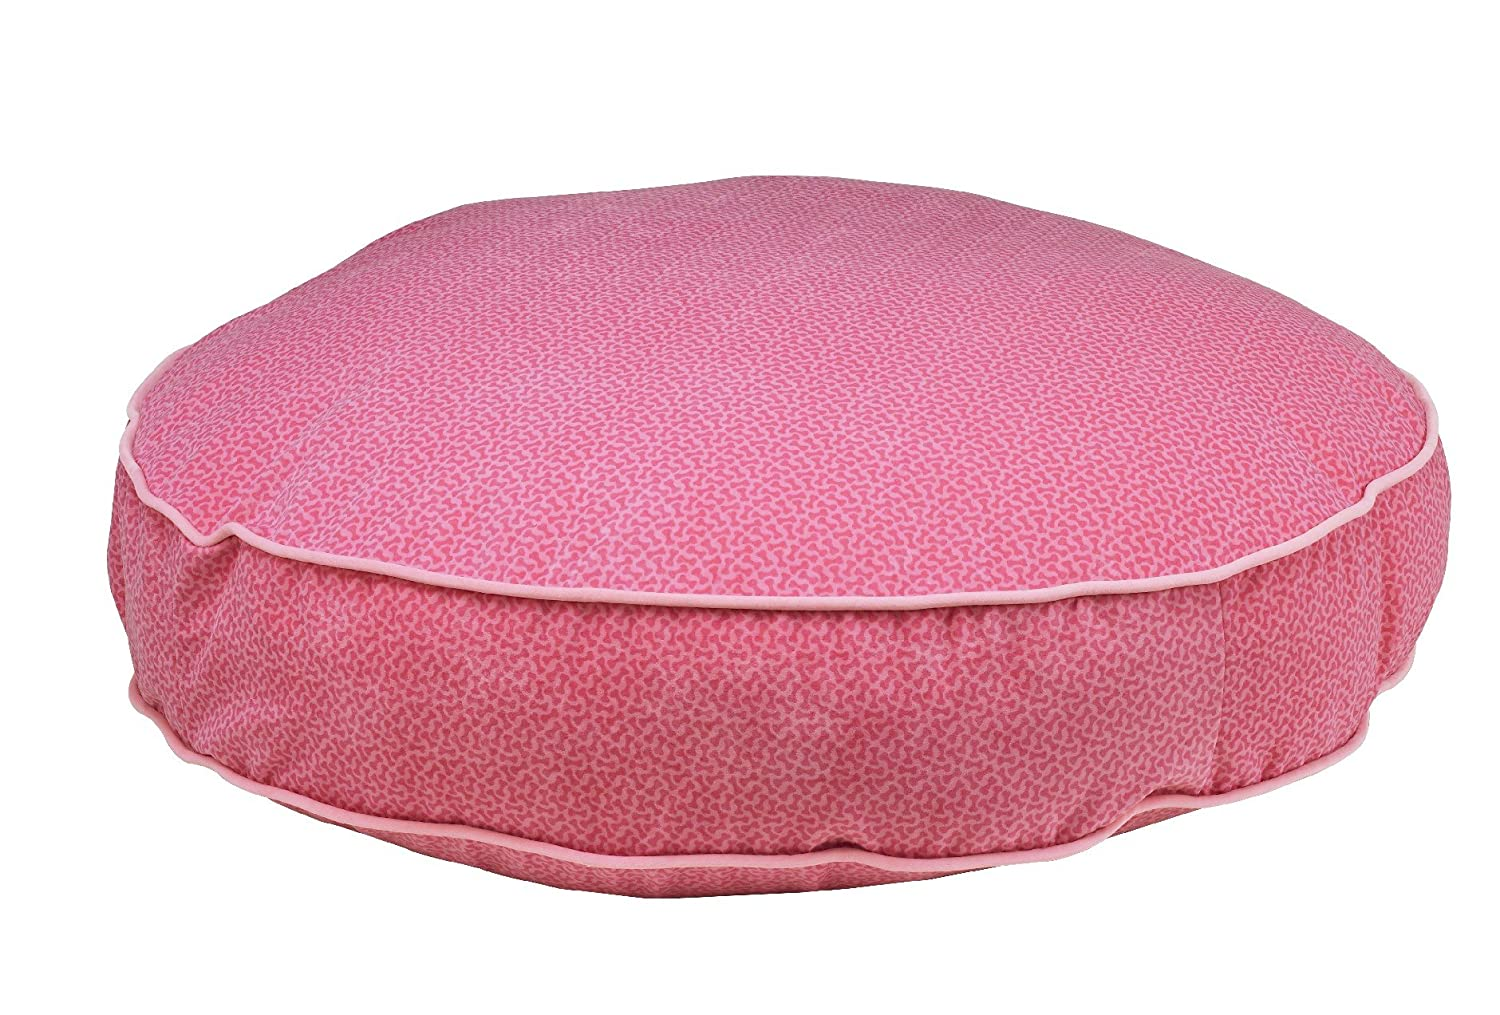 Bowsers 9669 Super Soft Round Bed